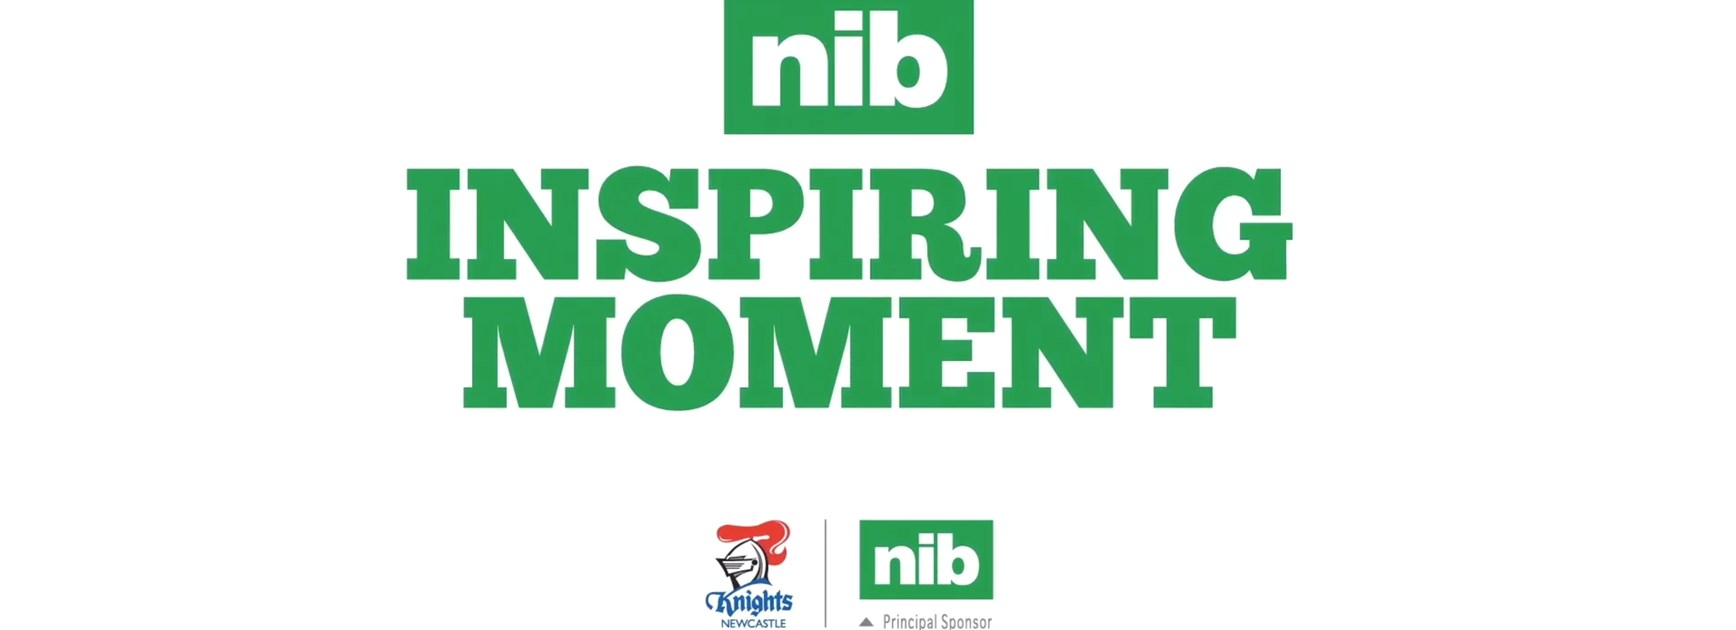 Vote for the nib Inspiring moment of the month